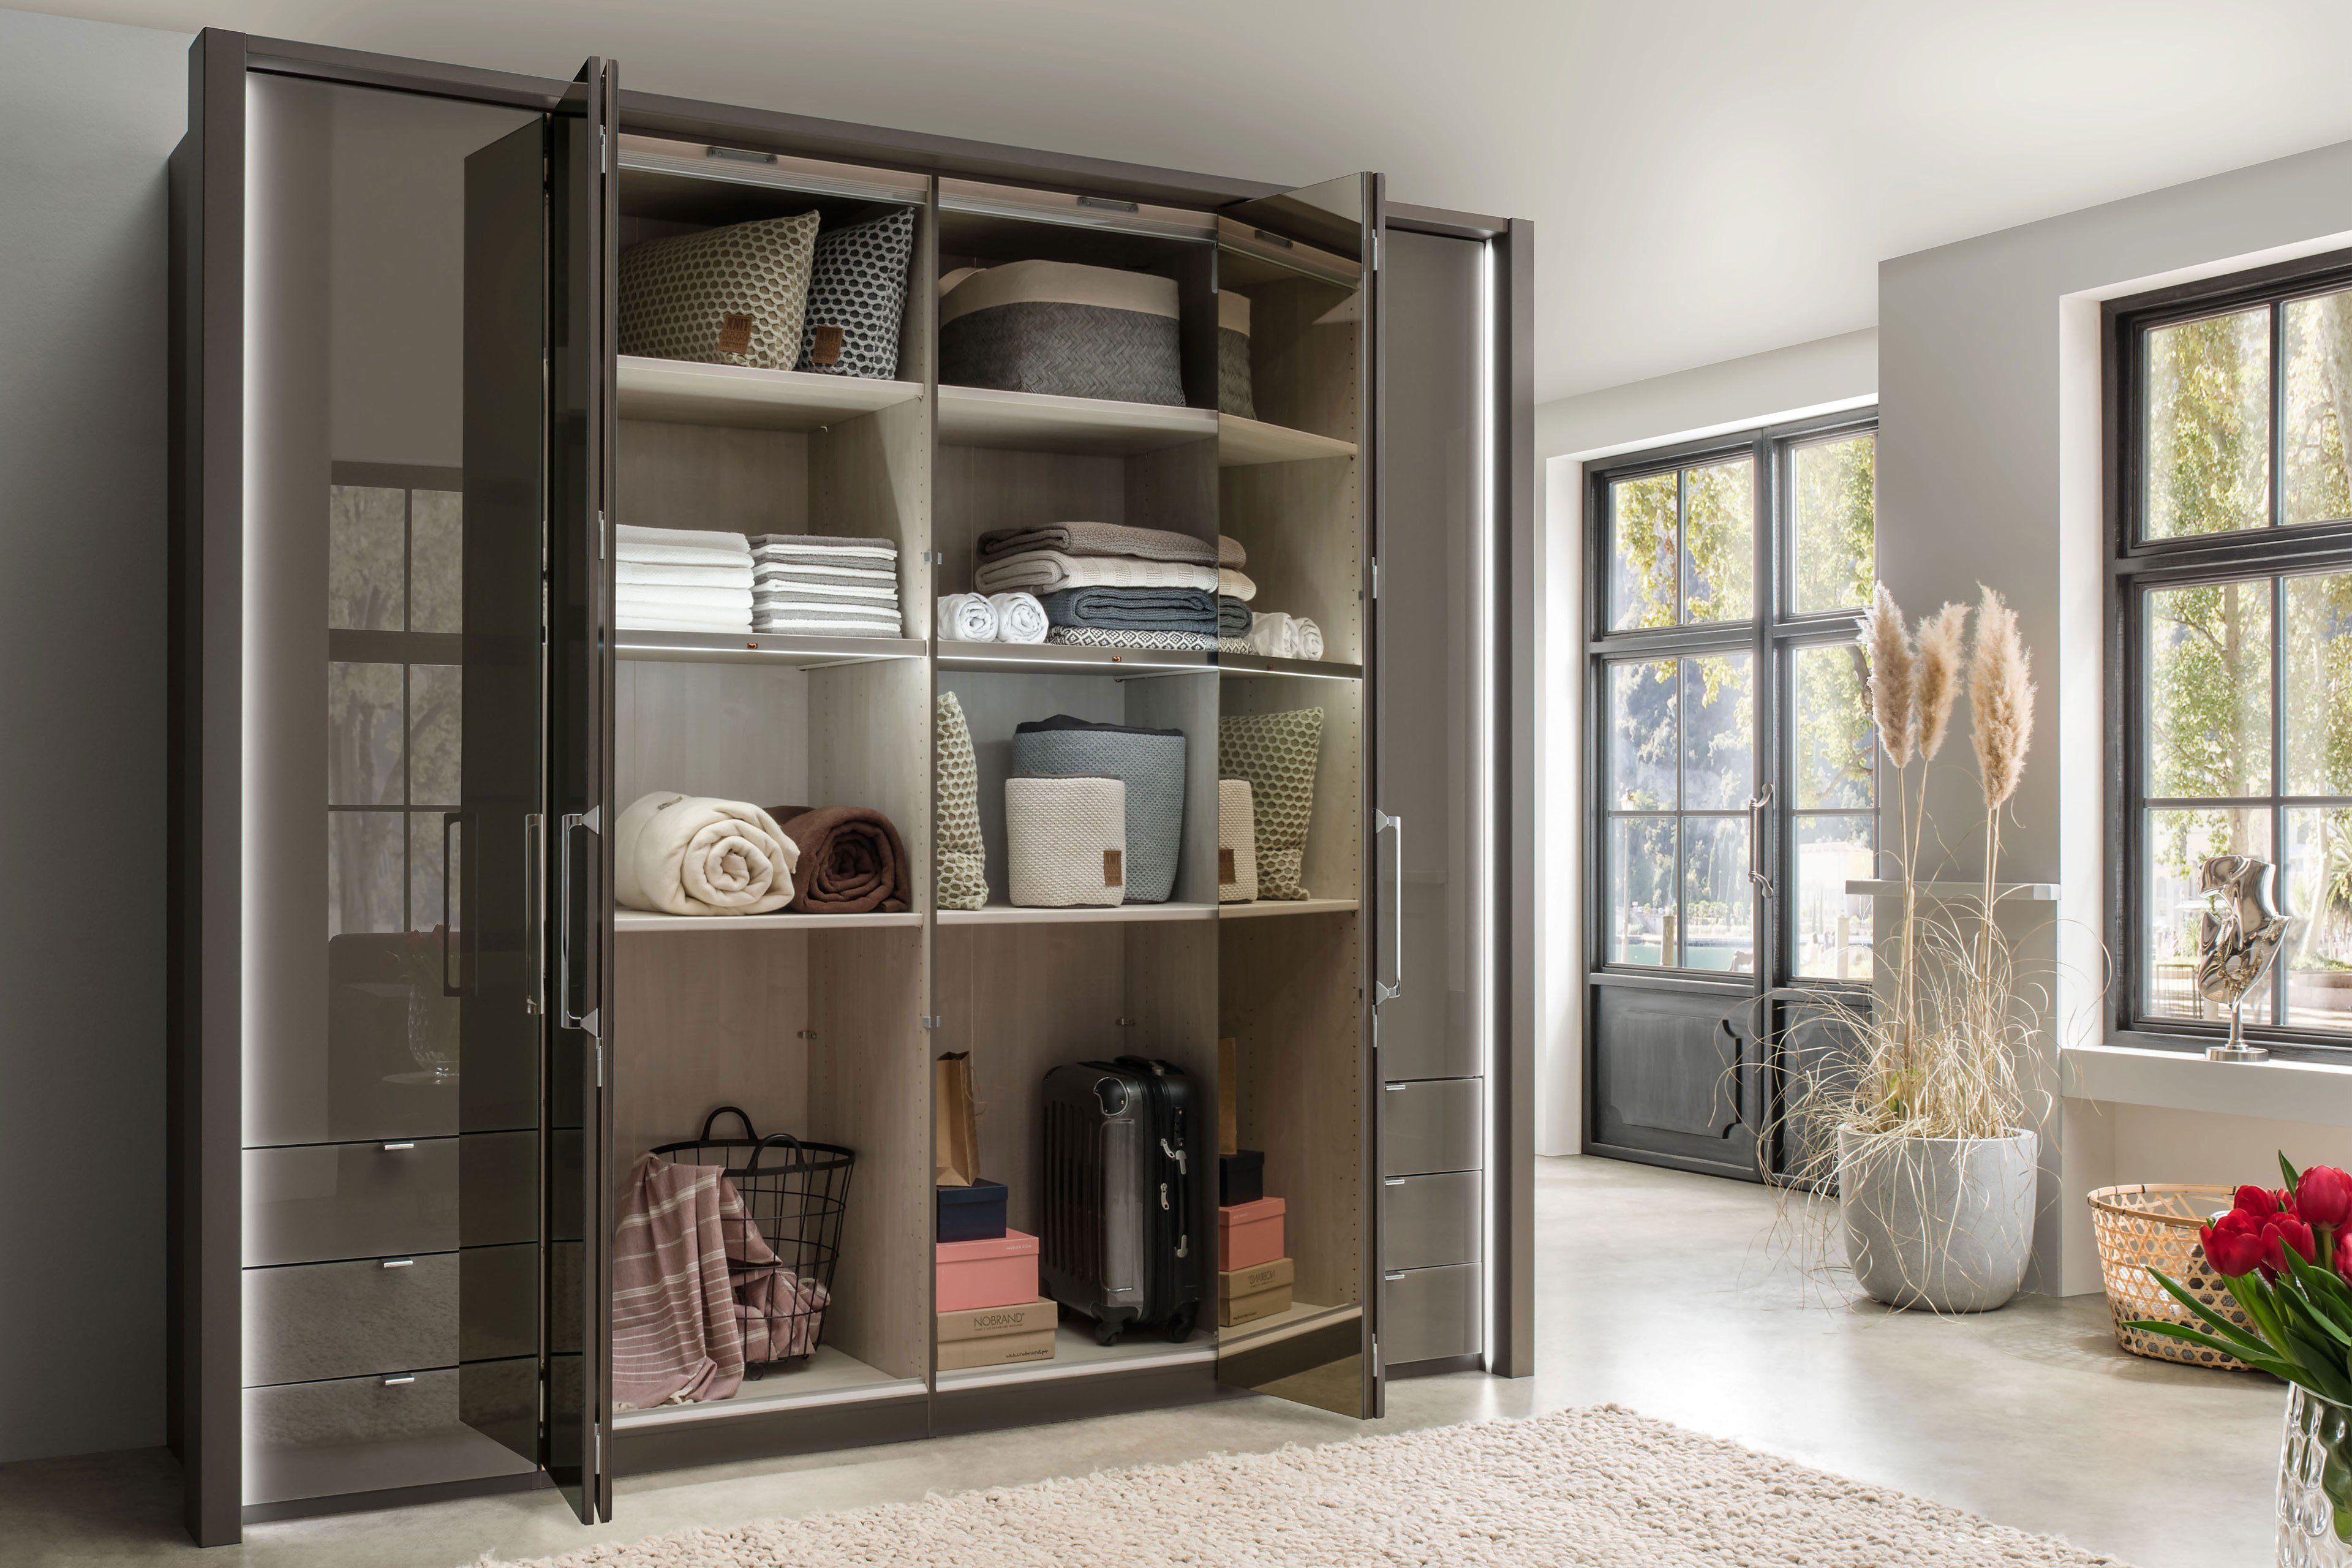 wiemann kansas schrank havanna kristallspiegel m bel letz ihr online shop. Black Bedroom Furniture Sets. Home Design Ideas